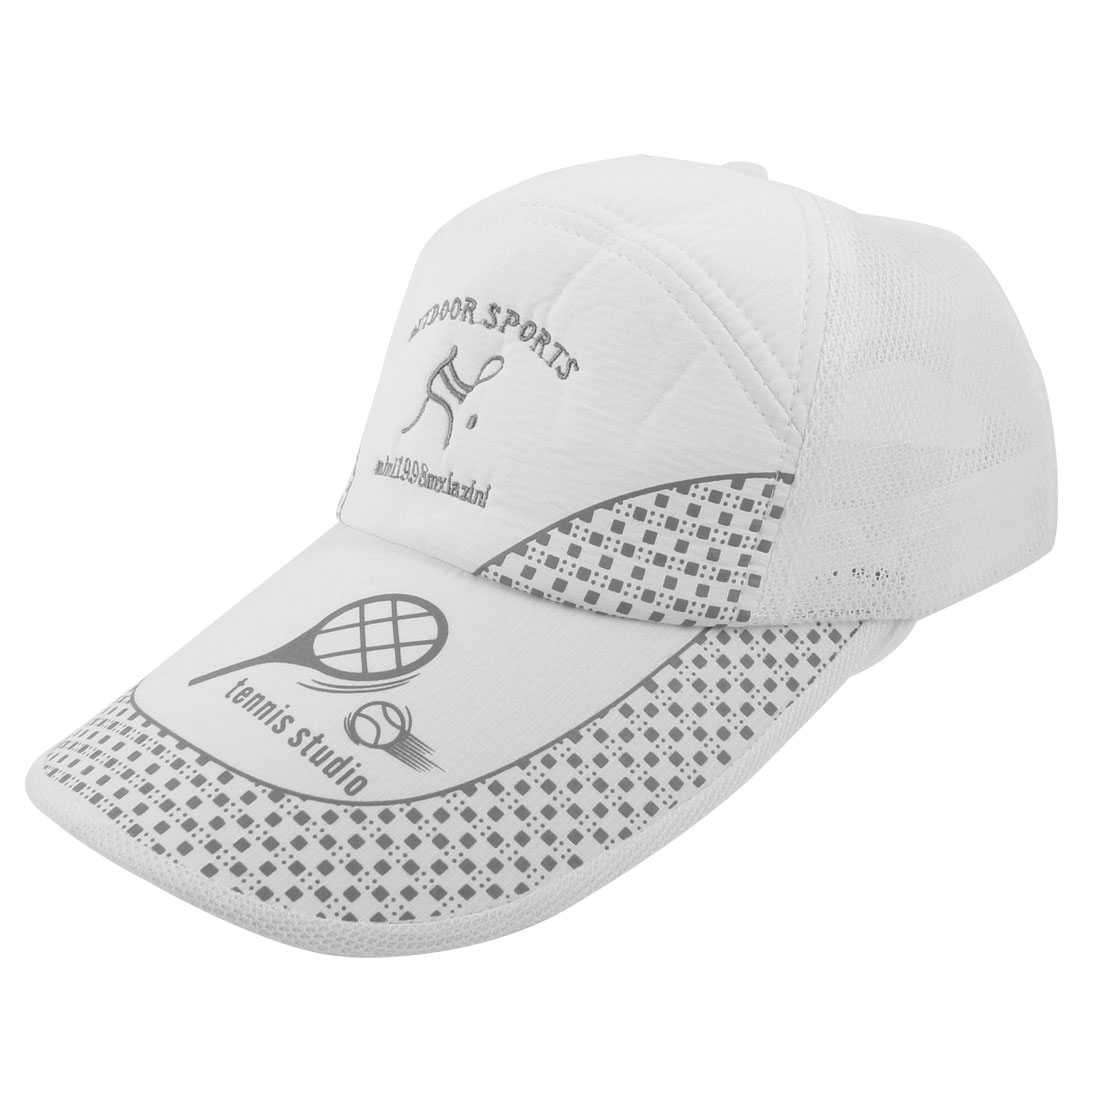 Unisex Letter Pattern Adjustable Sports Tennis Headwear Peaked Cap Hat White